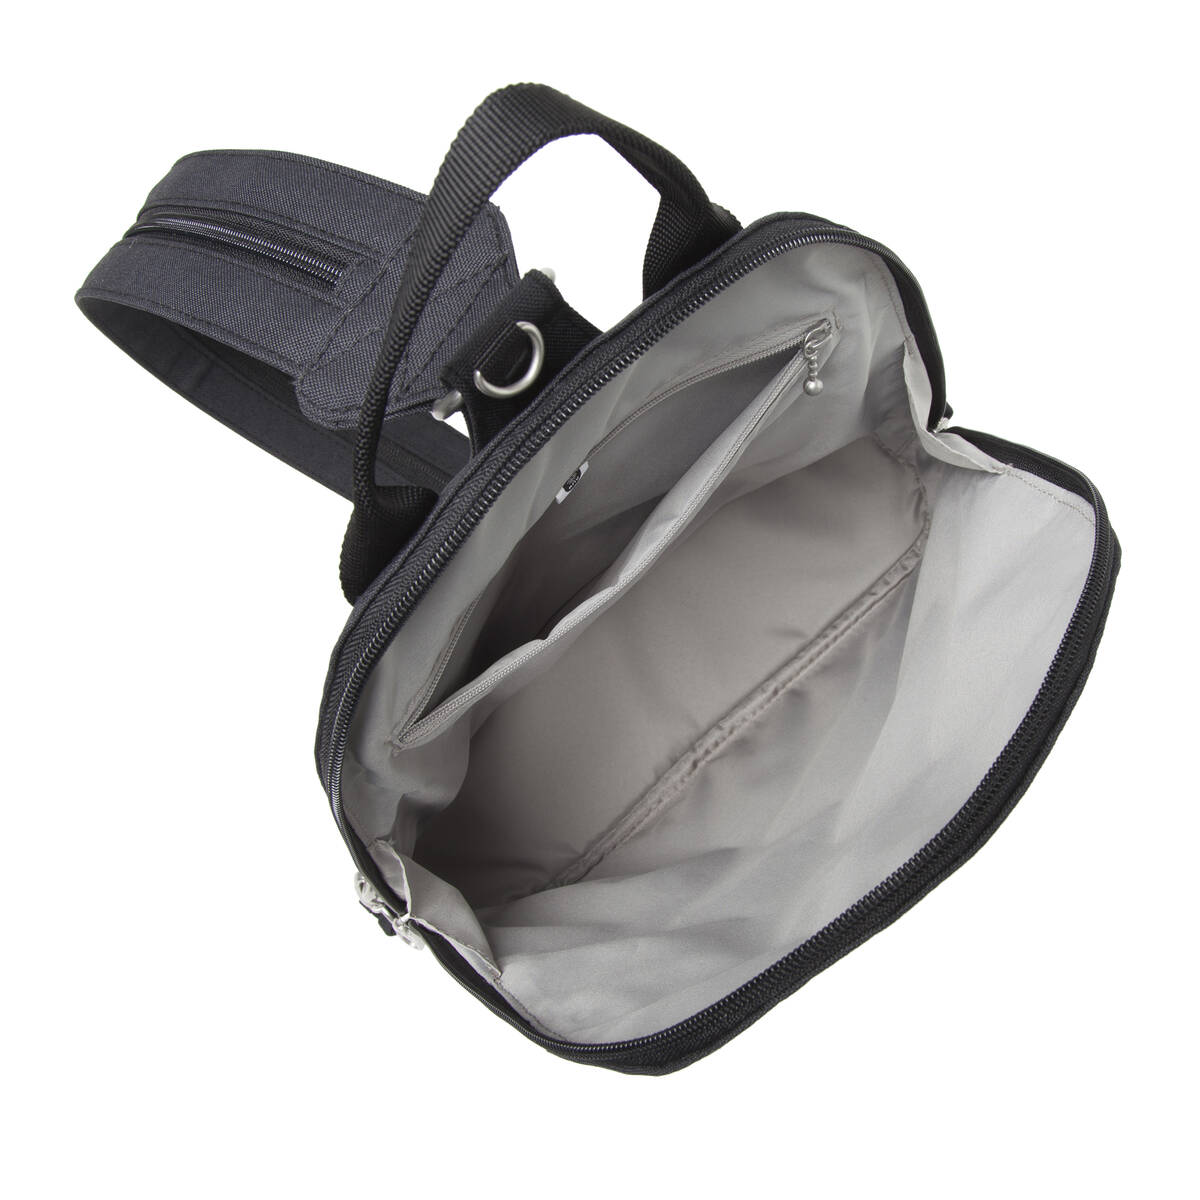 SecureTex™ anti-theft convertible backpack